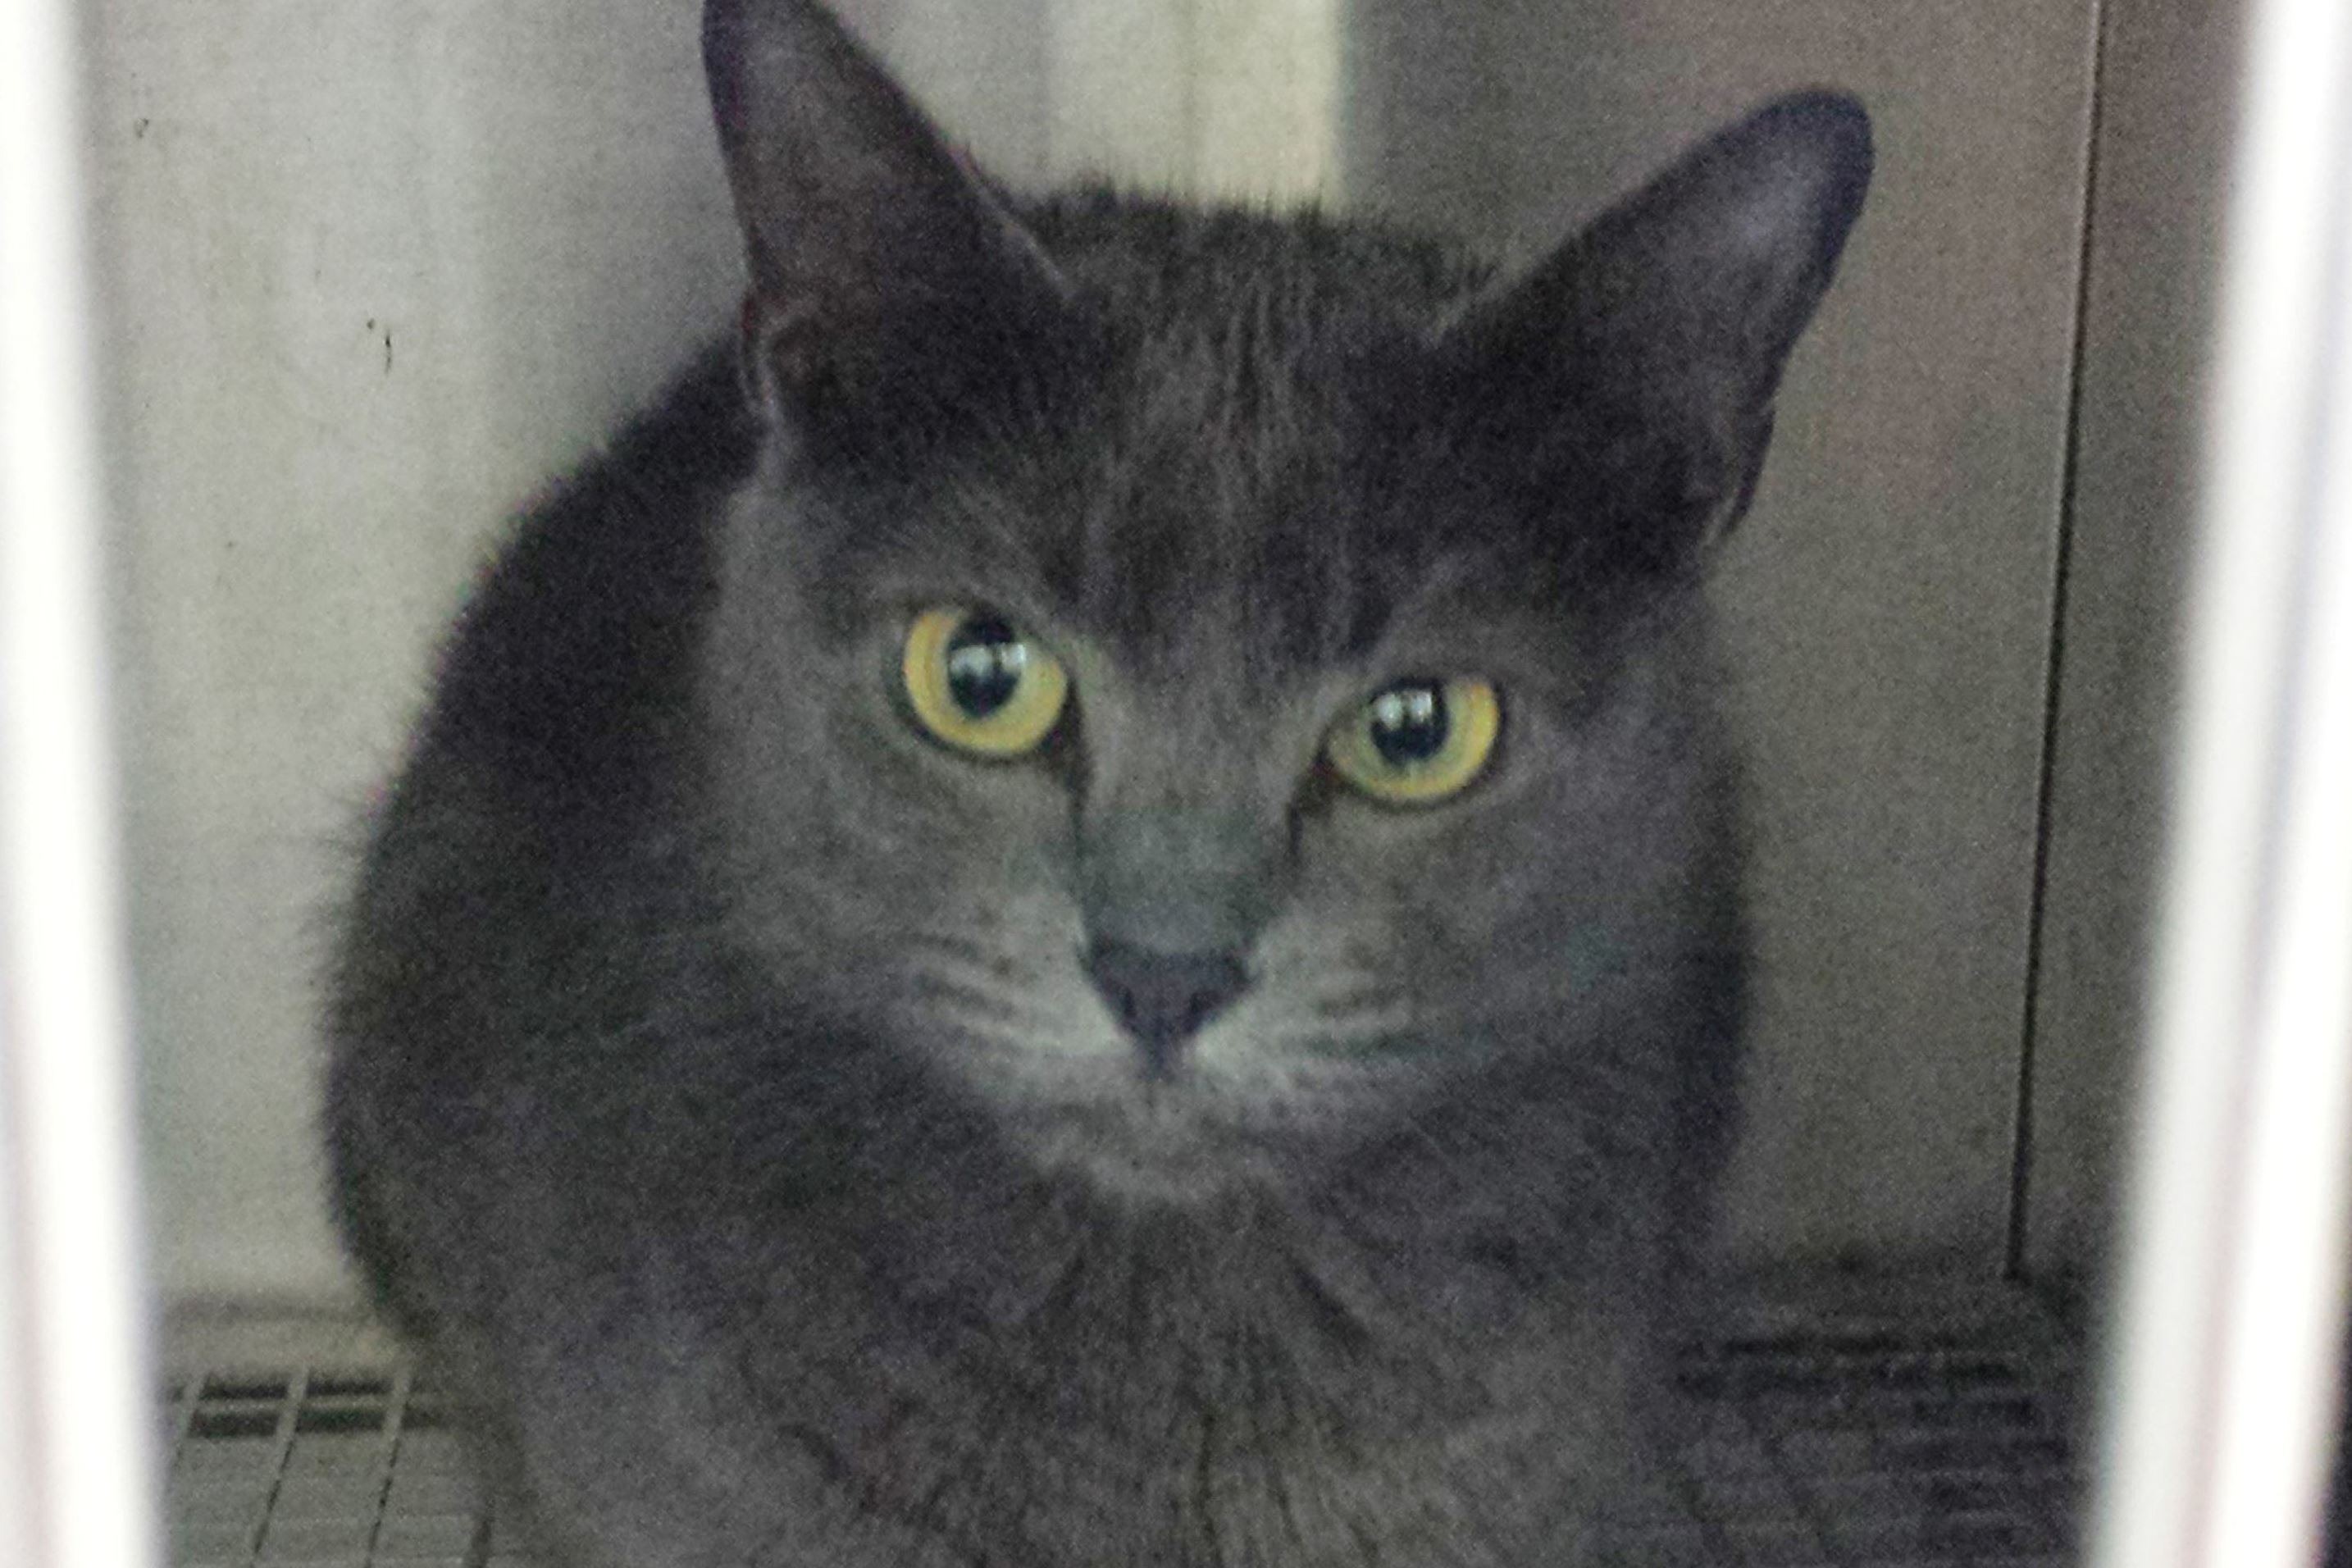 USA-FLORIDA-CAT Kush, a four-year-old Russian Blue, is seen in a cage at the local police station after her owner claimed the cat attacked her in her home, in DeLand, Florida.